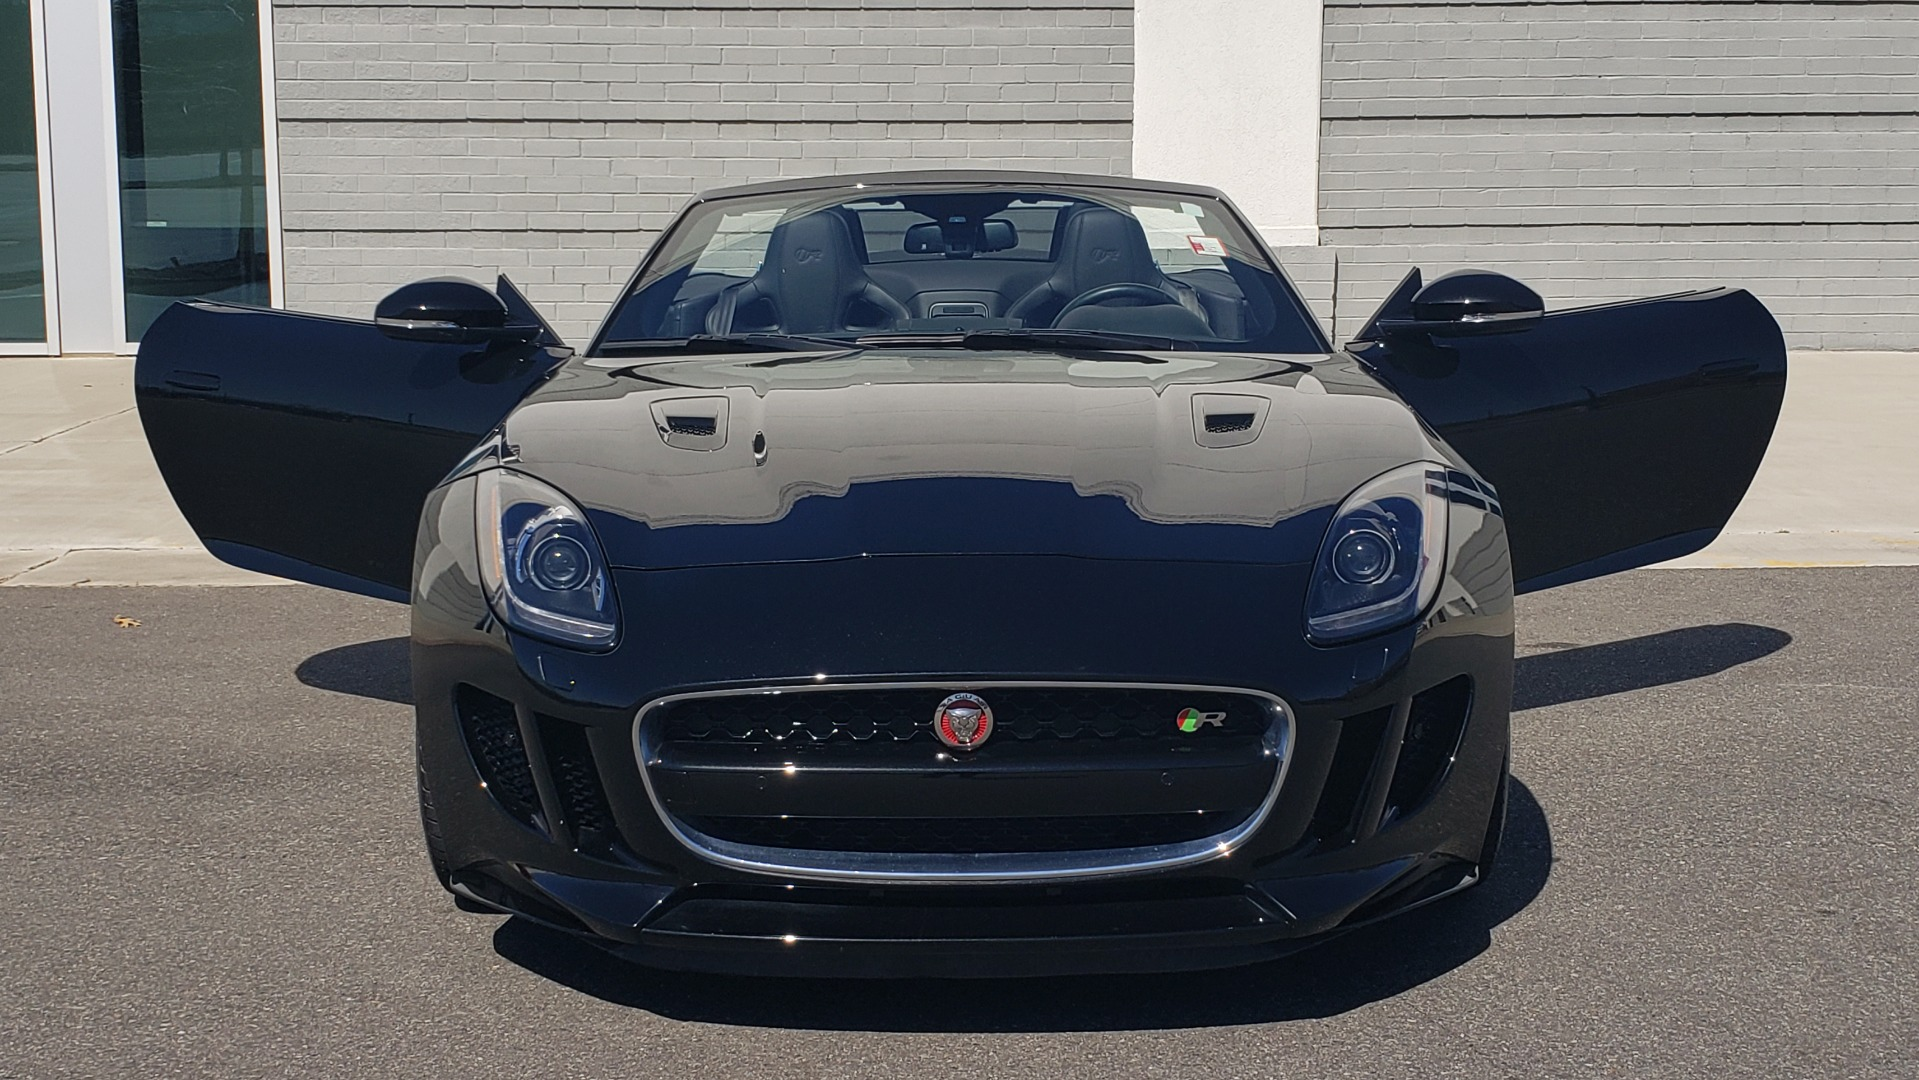 Used 2016 Jaguar F-TYPE R CONVERTIBLE / SC 5.0L 550HP / VISION PACK 3 / BSM / REARVIEW for sale $63,000 at Formula Imports in Charlotte NC 28227 58